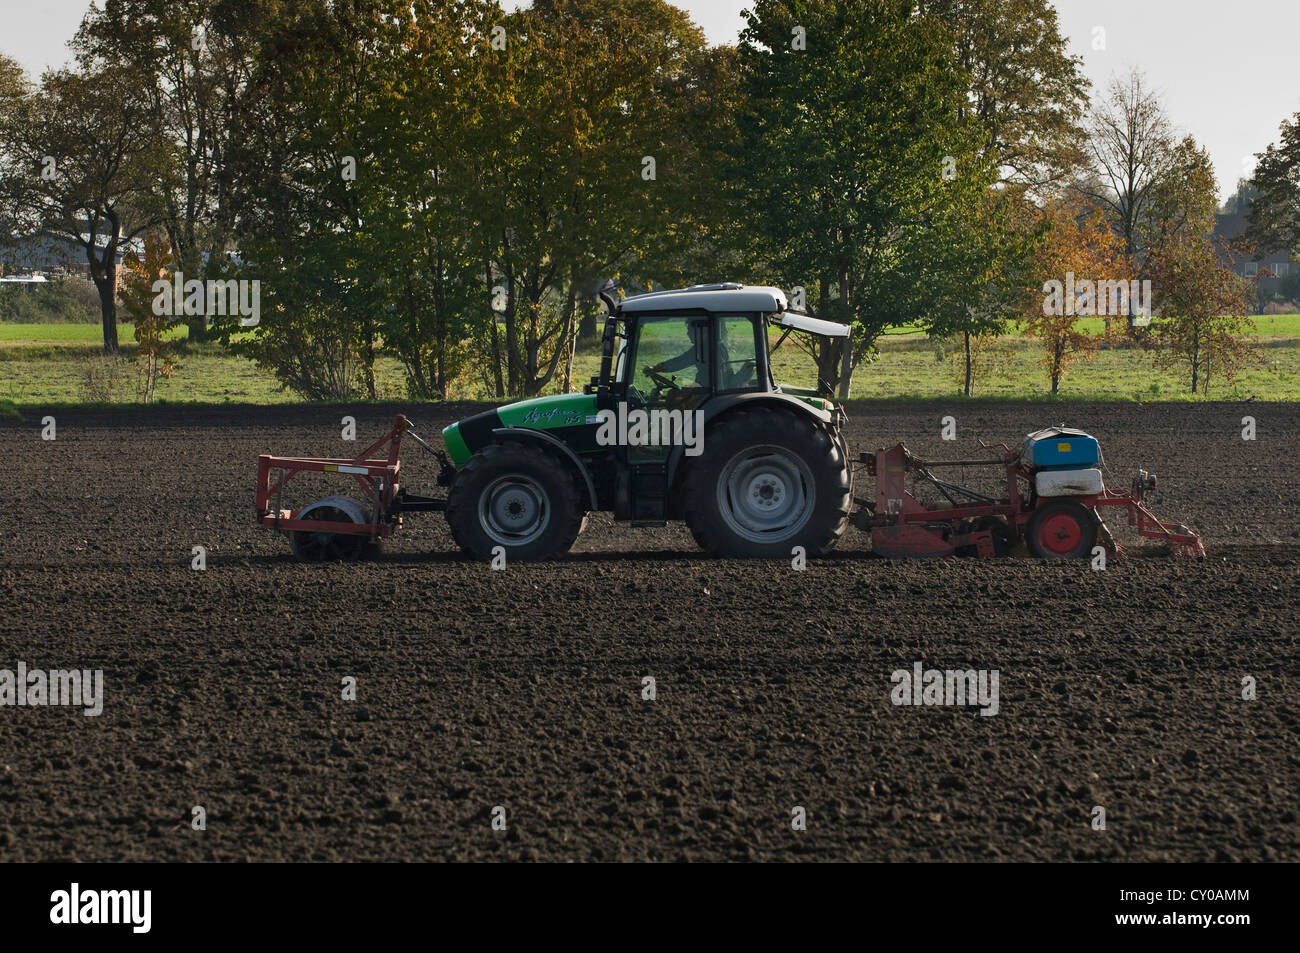 Tractor with front roller and a sowing machine at the back on a field, North Rhine-Westphalia, PublicGround - Stock Image